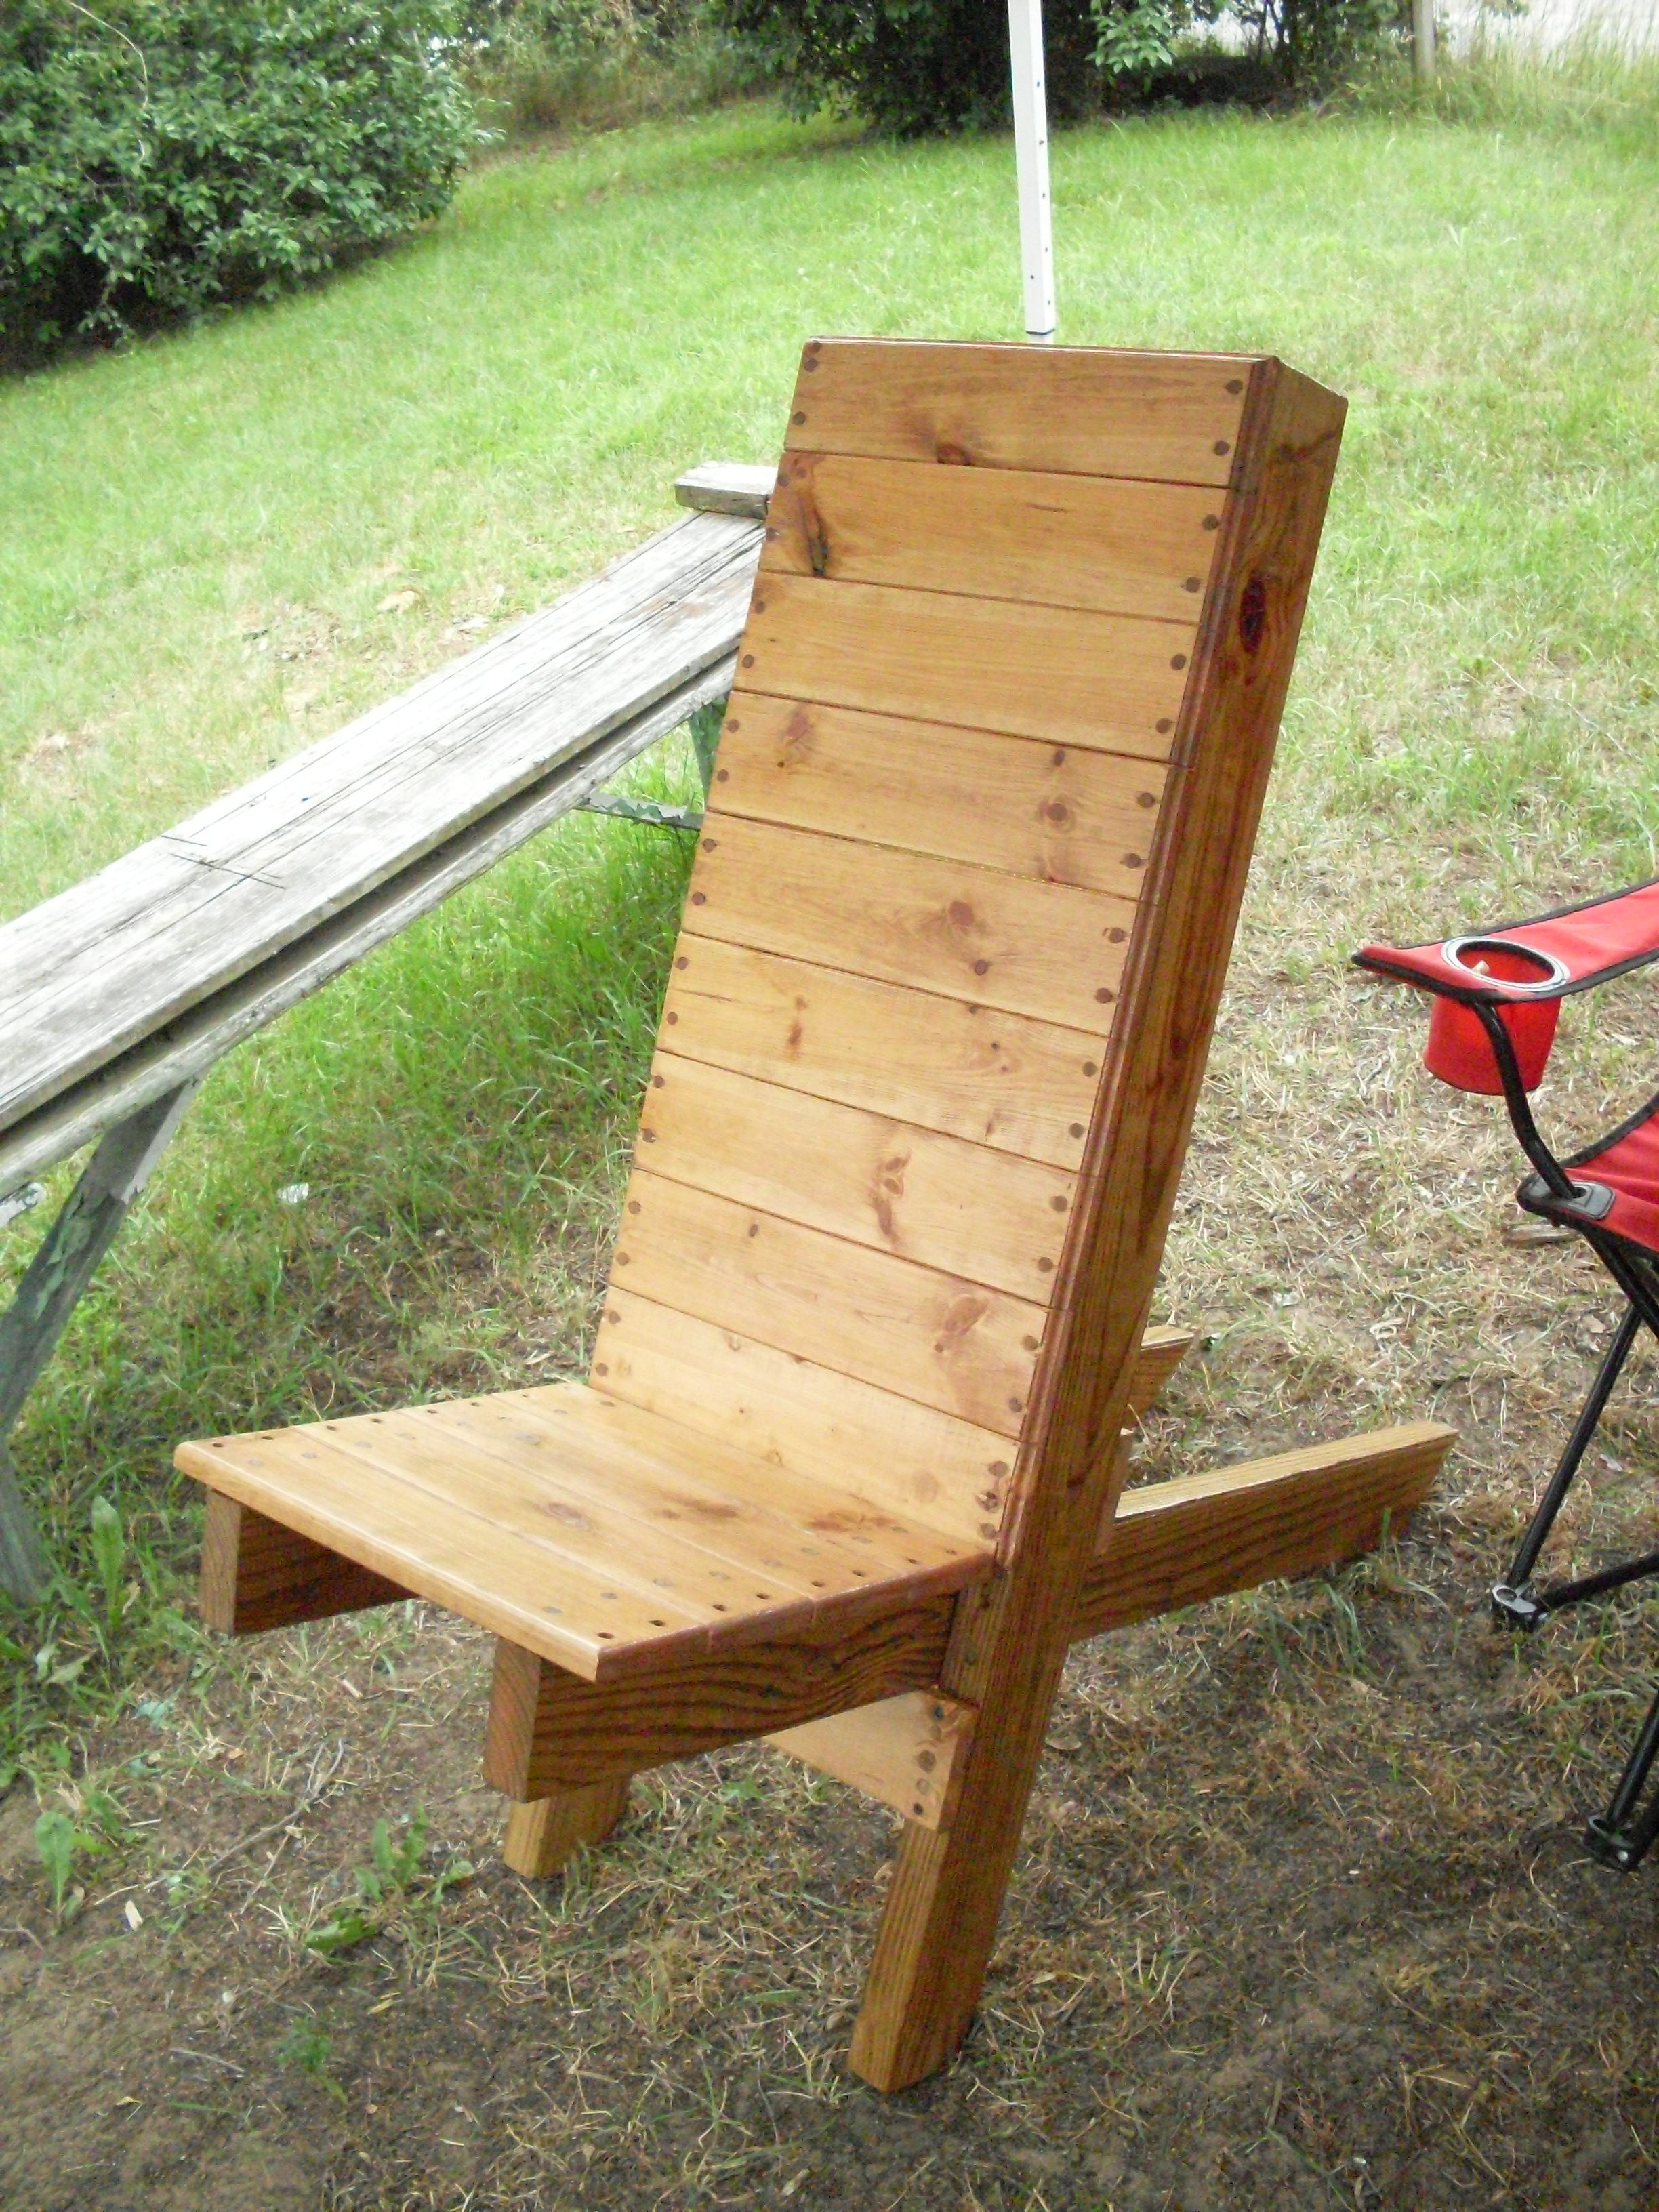 Diy wooden outdoor chairs quick woodworking projects for Camp plans